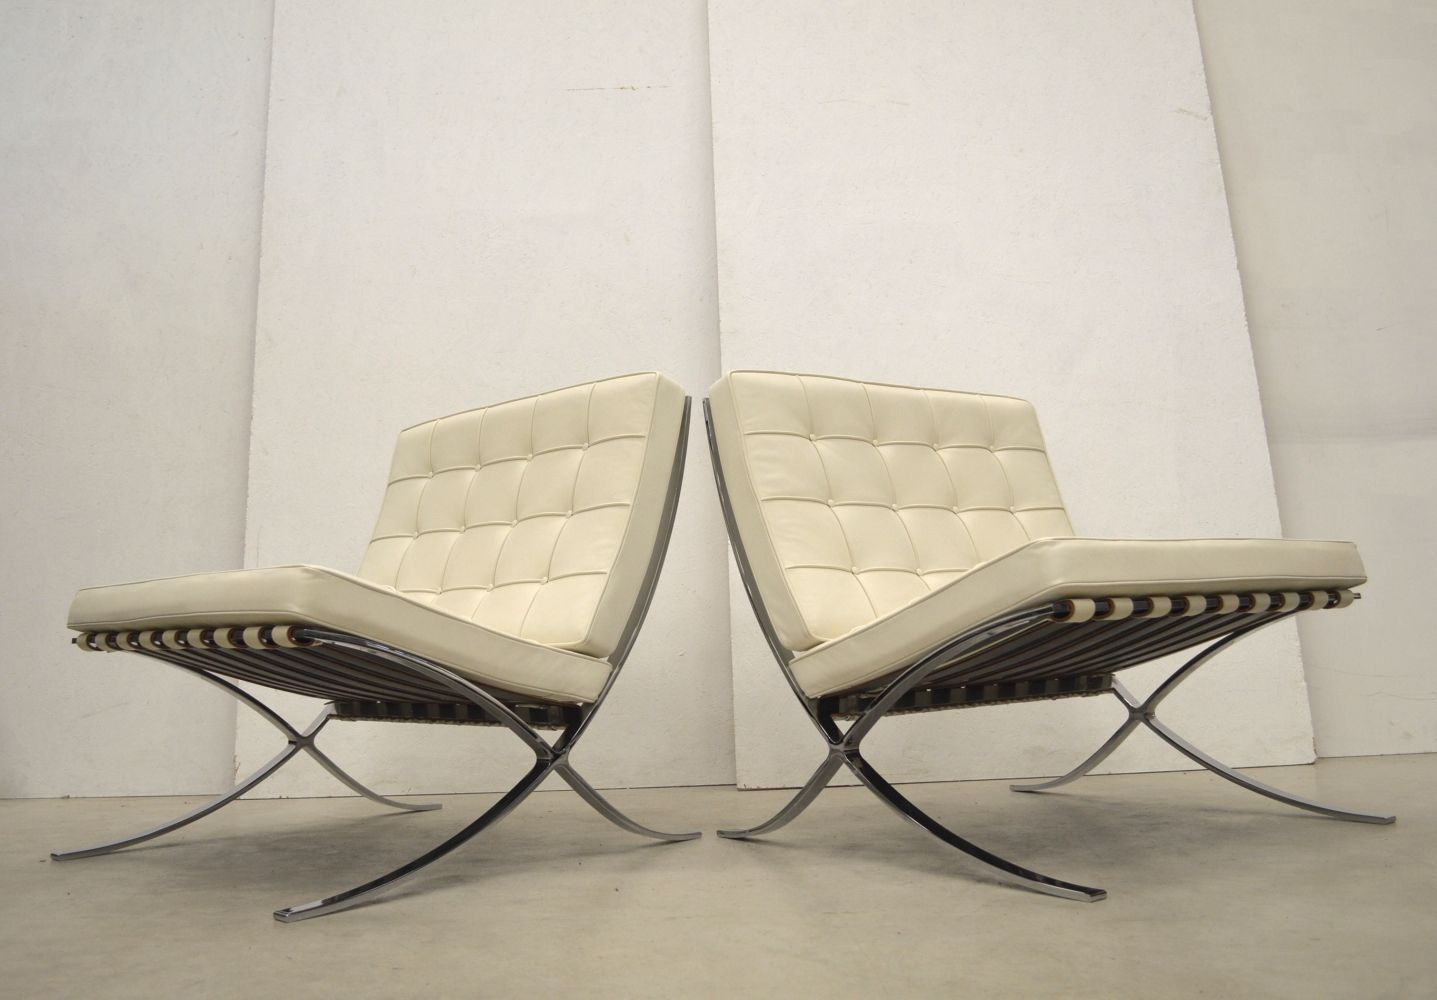 For Sale Pair Of Barcelona Lounge Chairs By Ludwig Mies Van Der Rohe For Knoll 1990s In 2020 Lounge Chair Mies Van Der Rohe Chair